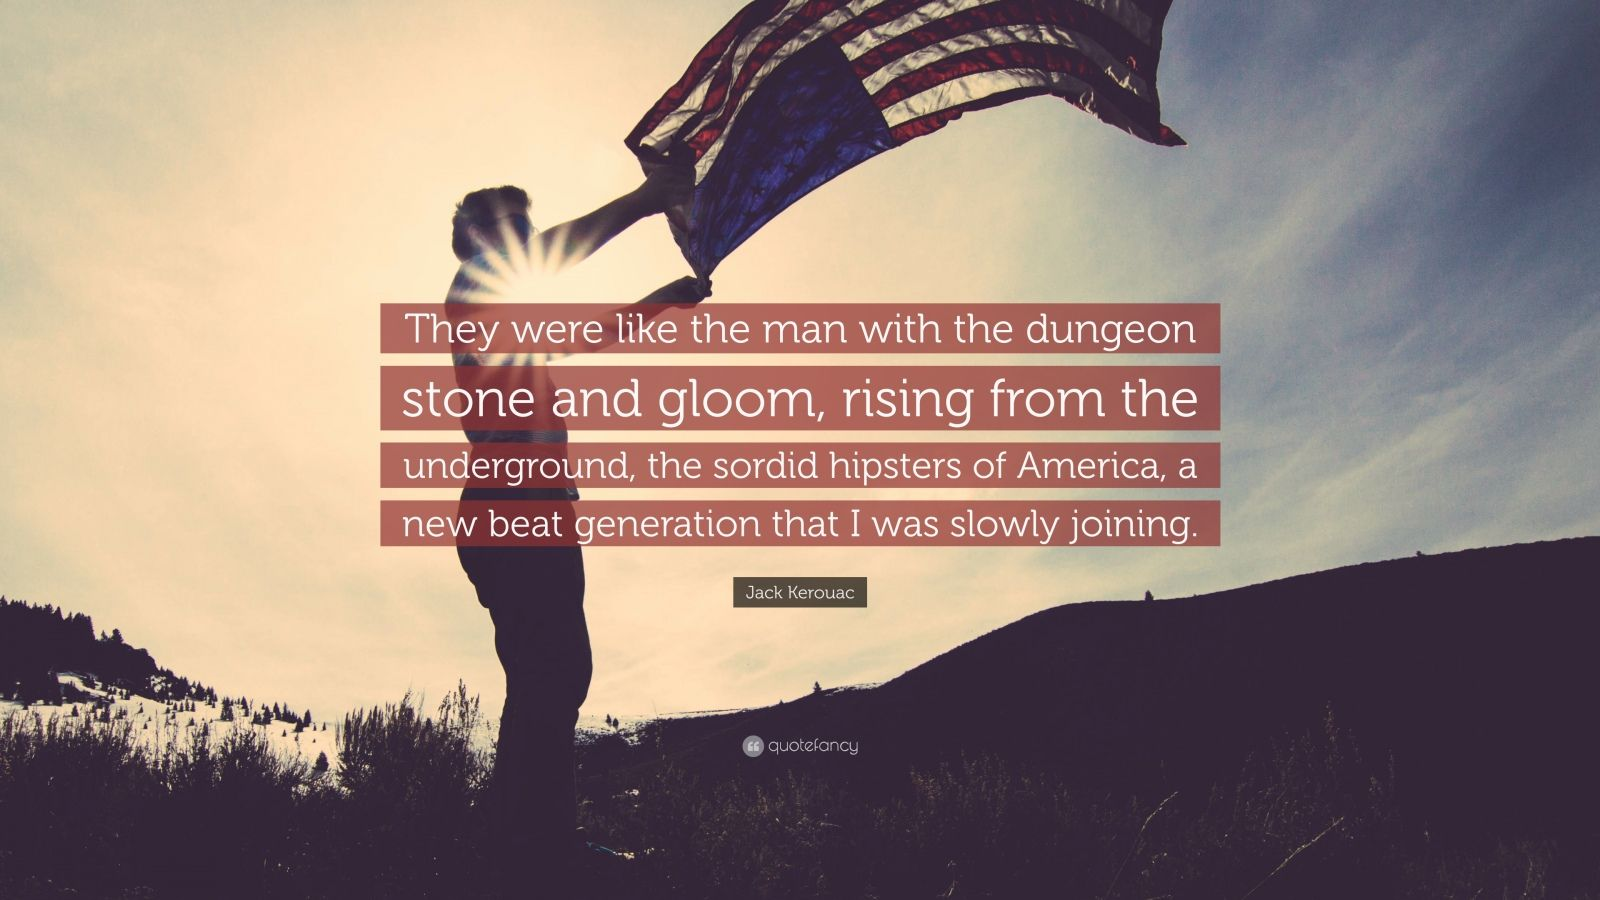 """Jack Kerouac Quote: """"They were like the man with the dungeon stone and gloom, rising from the underground, the sordid hipsters of America, a new beat generation that I was slowly joining."""""""